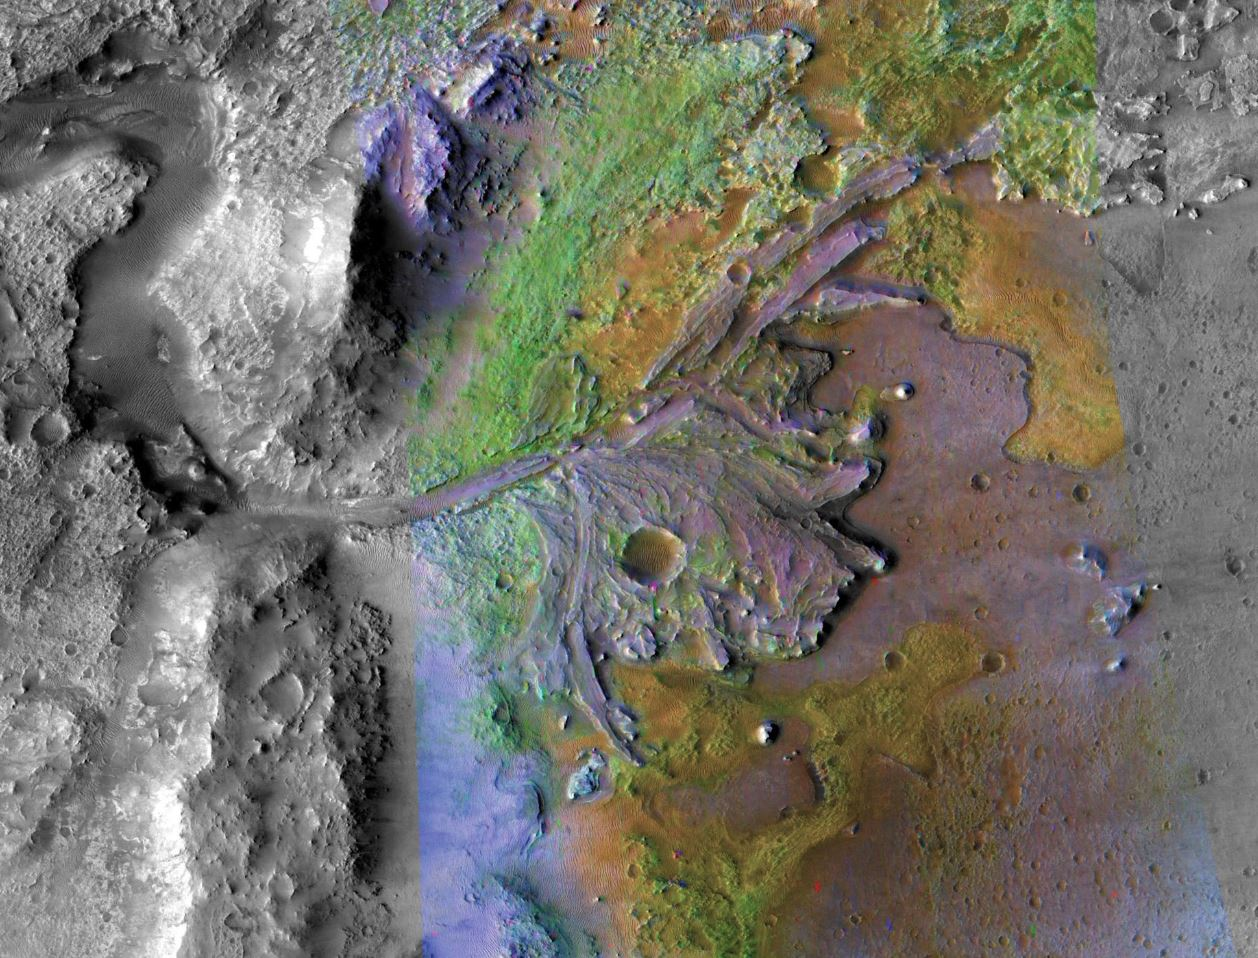 "The Mars 2020 rover is headed for Jezero crater. In addition to a stunning river delta, Jezero also has exposures of the potential ashfall deposit that was the focus of this study. The rover could confirm these new findings, which will be one of the rover's ""top 10 discoveries,"" says Brown professor Jack Mustard. - Image Credits: NASA/JPL/JHUAPL/MSSS/Brown University"